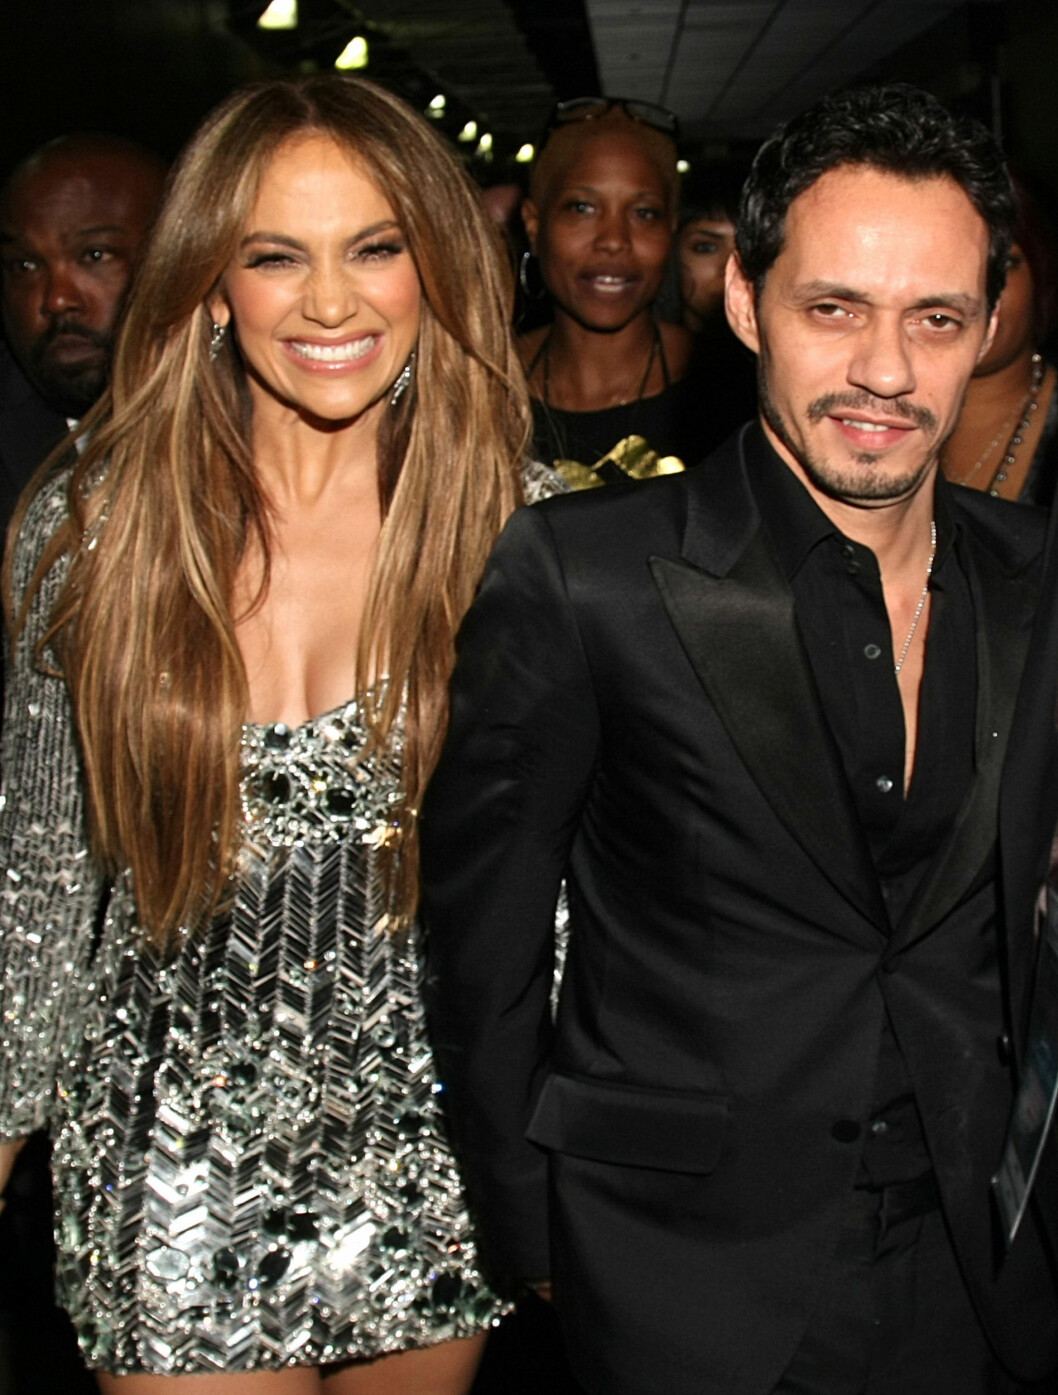 <strong>GLITRET:</strong> Jennifer Lopez kom i en  Emilio Pucci minikjole, komplettert med  Christian Louboutin-sko og Cartier diamanter. Ektemannen Marc Anthony var som vanlig ved hennes side. Foto: All Over Press